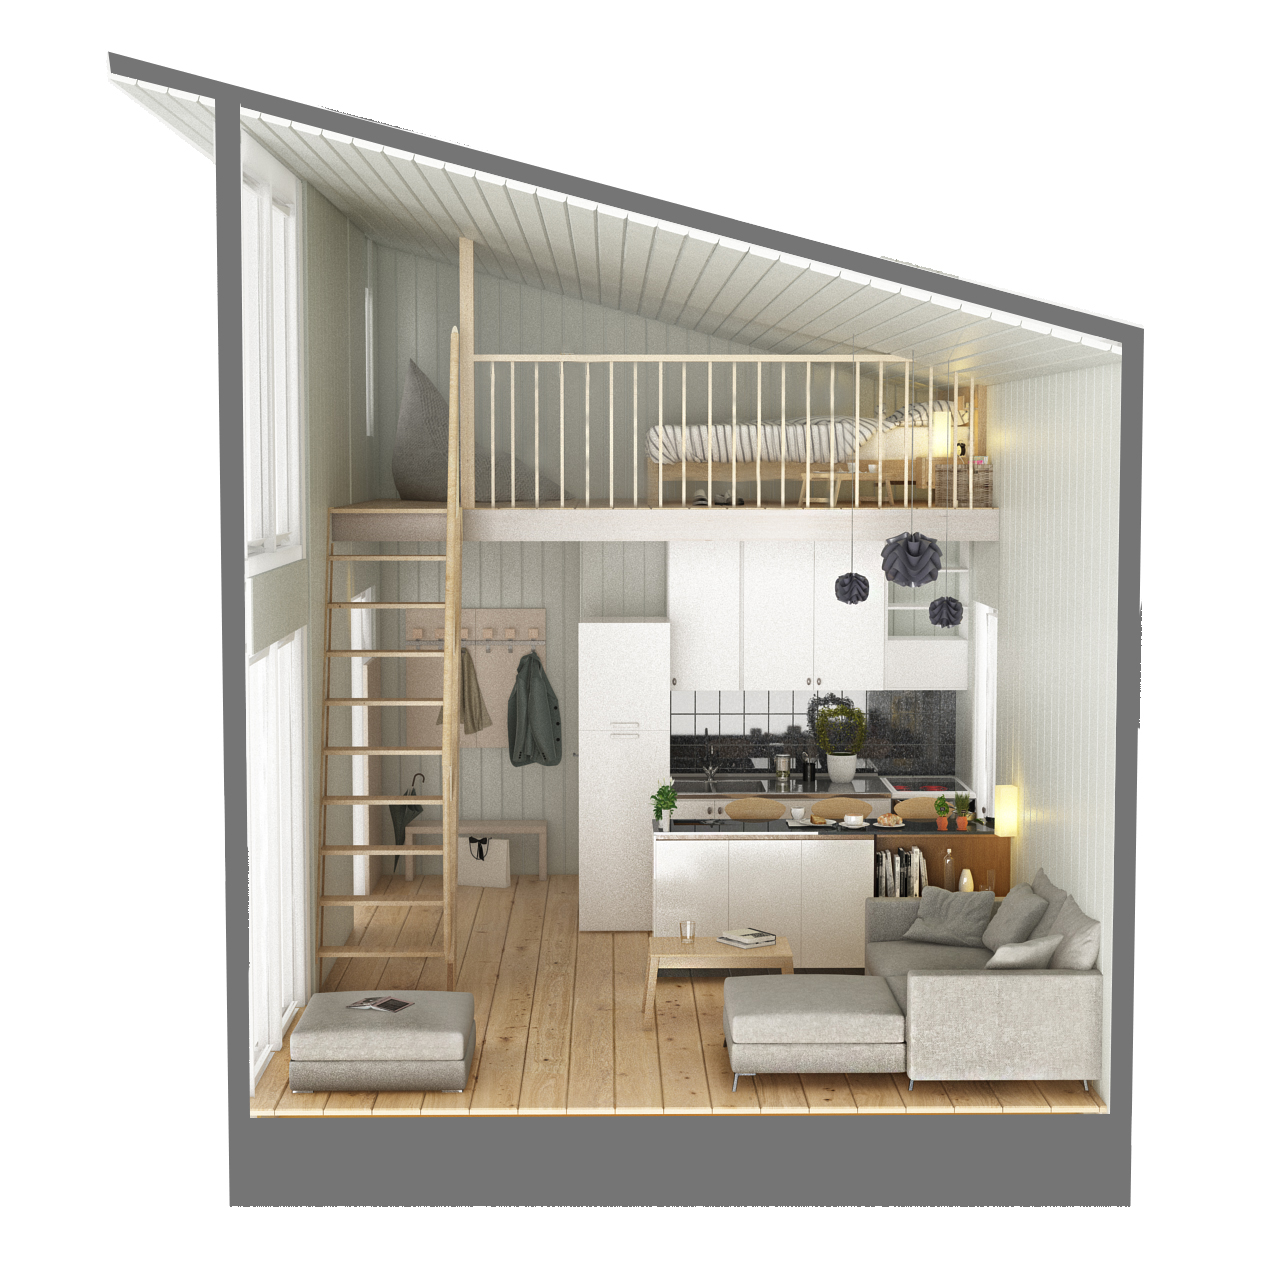 Lot 30205 - V Brand New Loft House - Insulated Roof Panels - Wooden Floor - 10 Wooden Tempered Glass Walls -